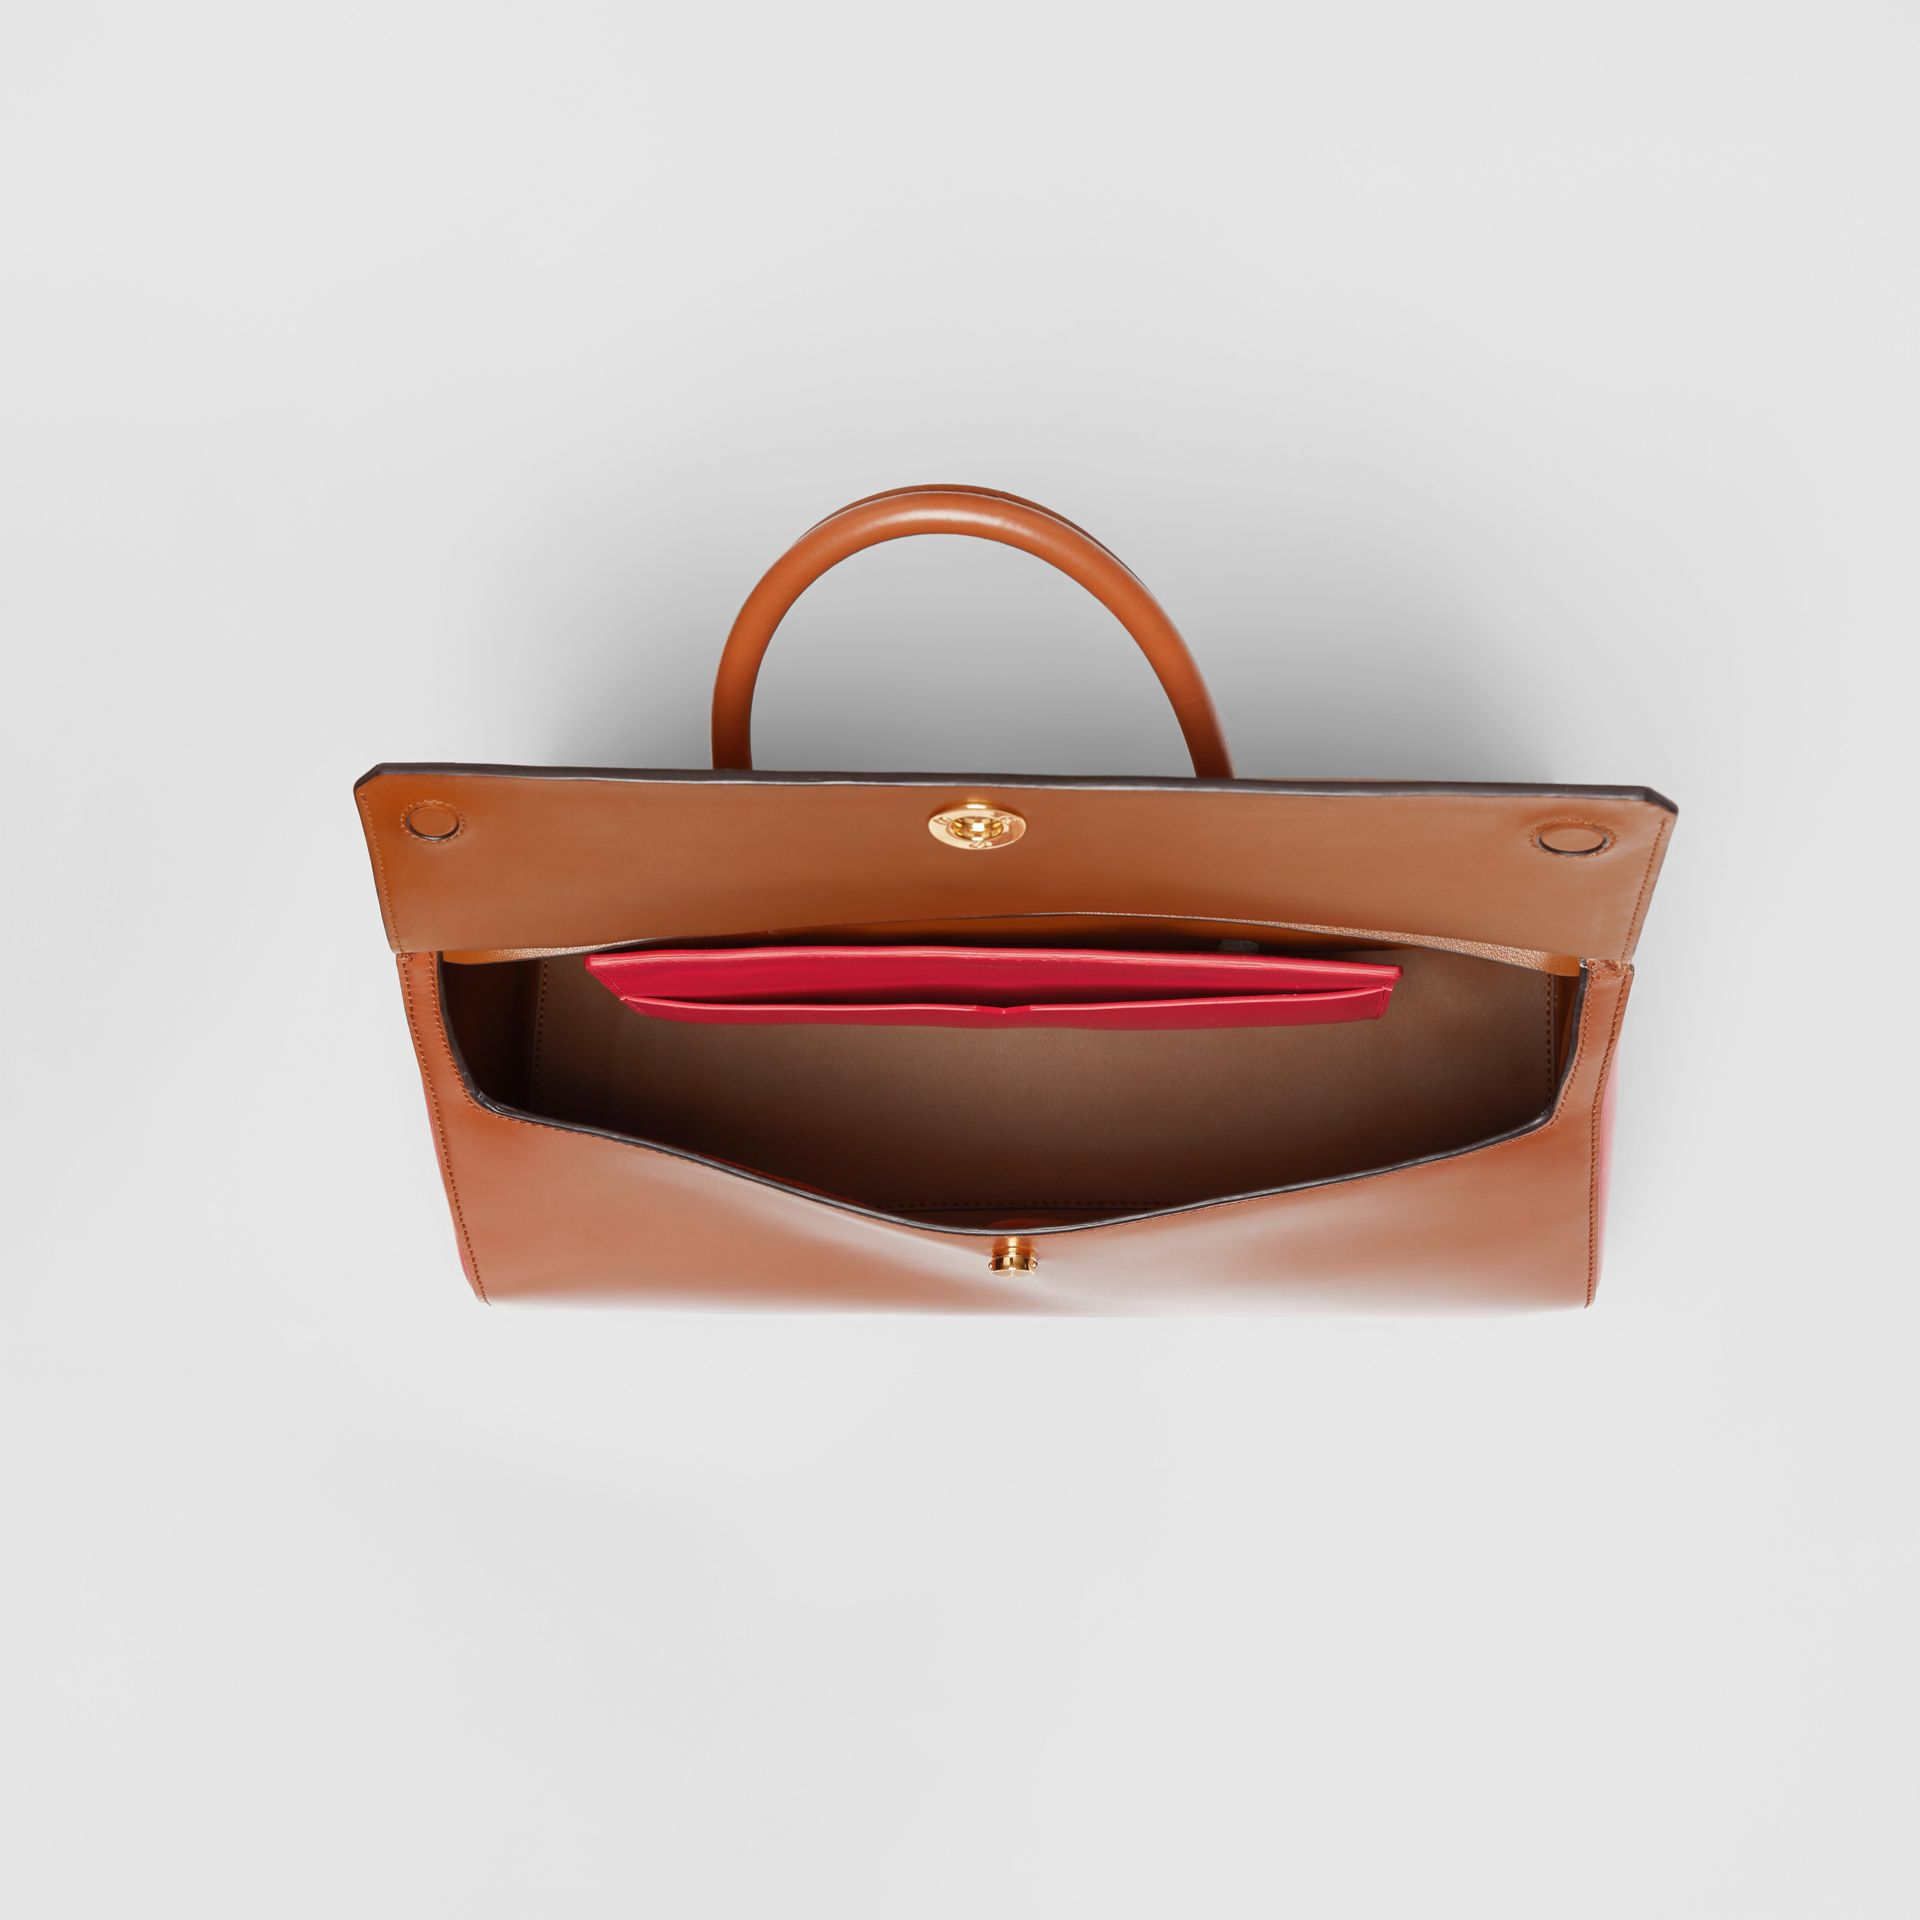 Medium Leather Elizabeth Bag in Malt Brown - Women | Burberry - gallery image 3